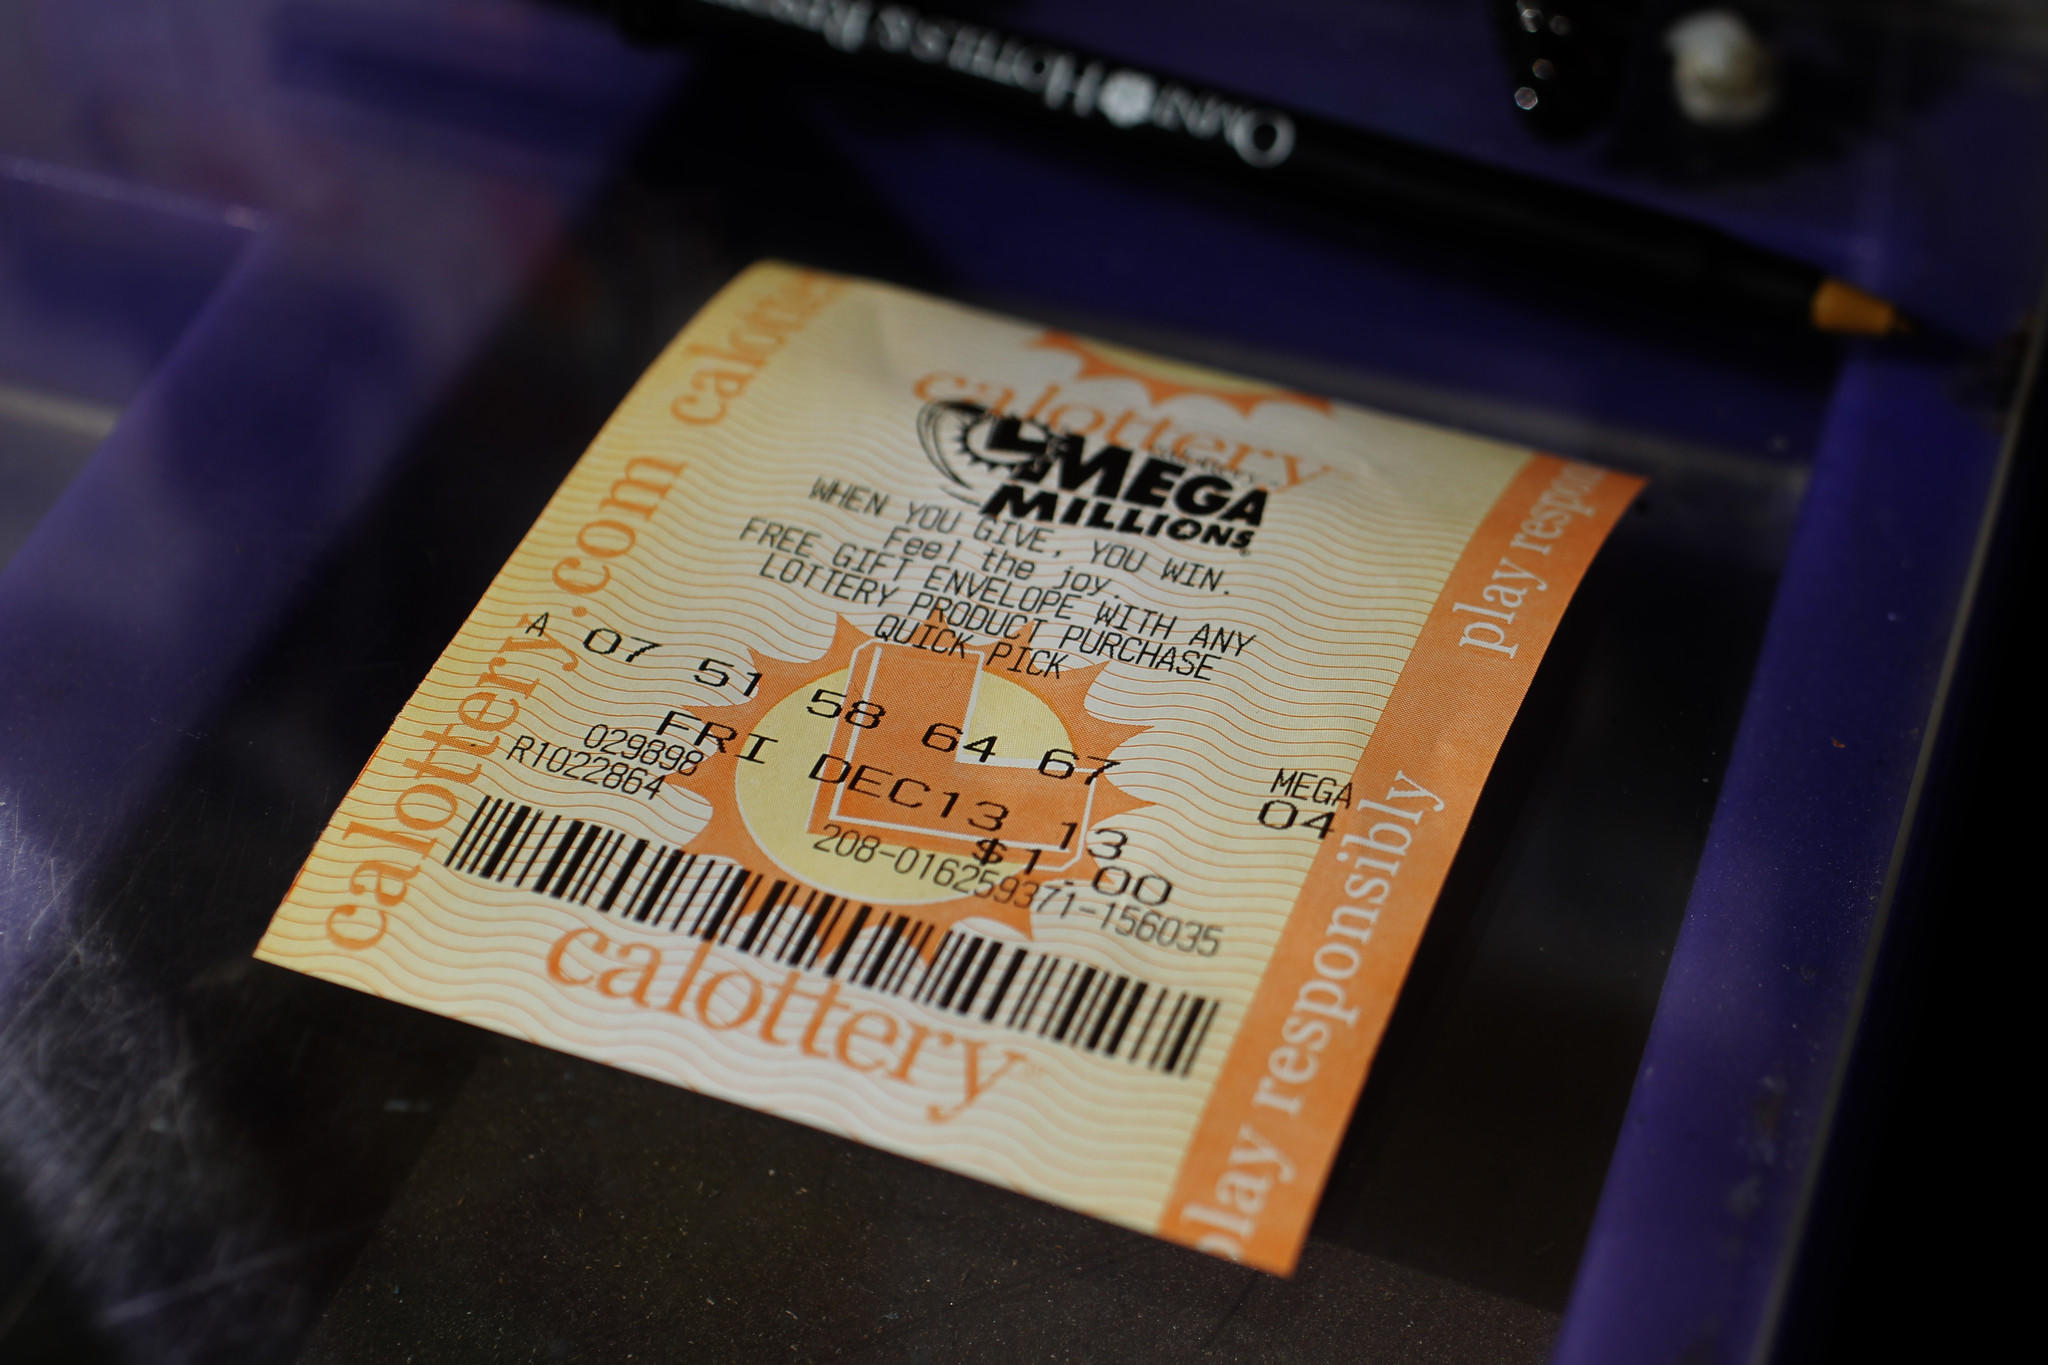 There's a 1 in 259 million chance that a ticket will win the Mega Millions lottery.